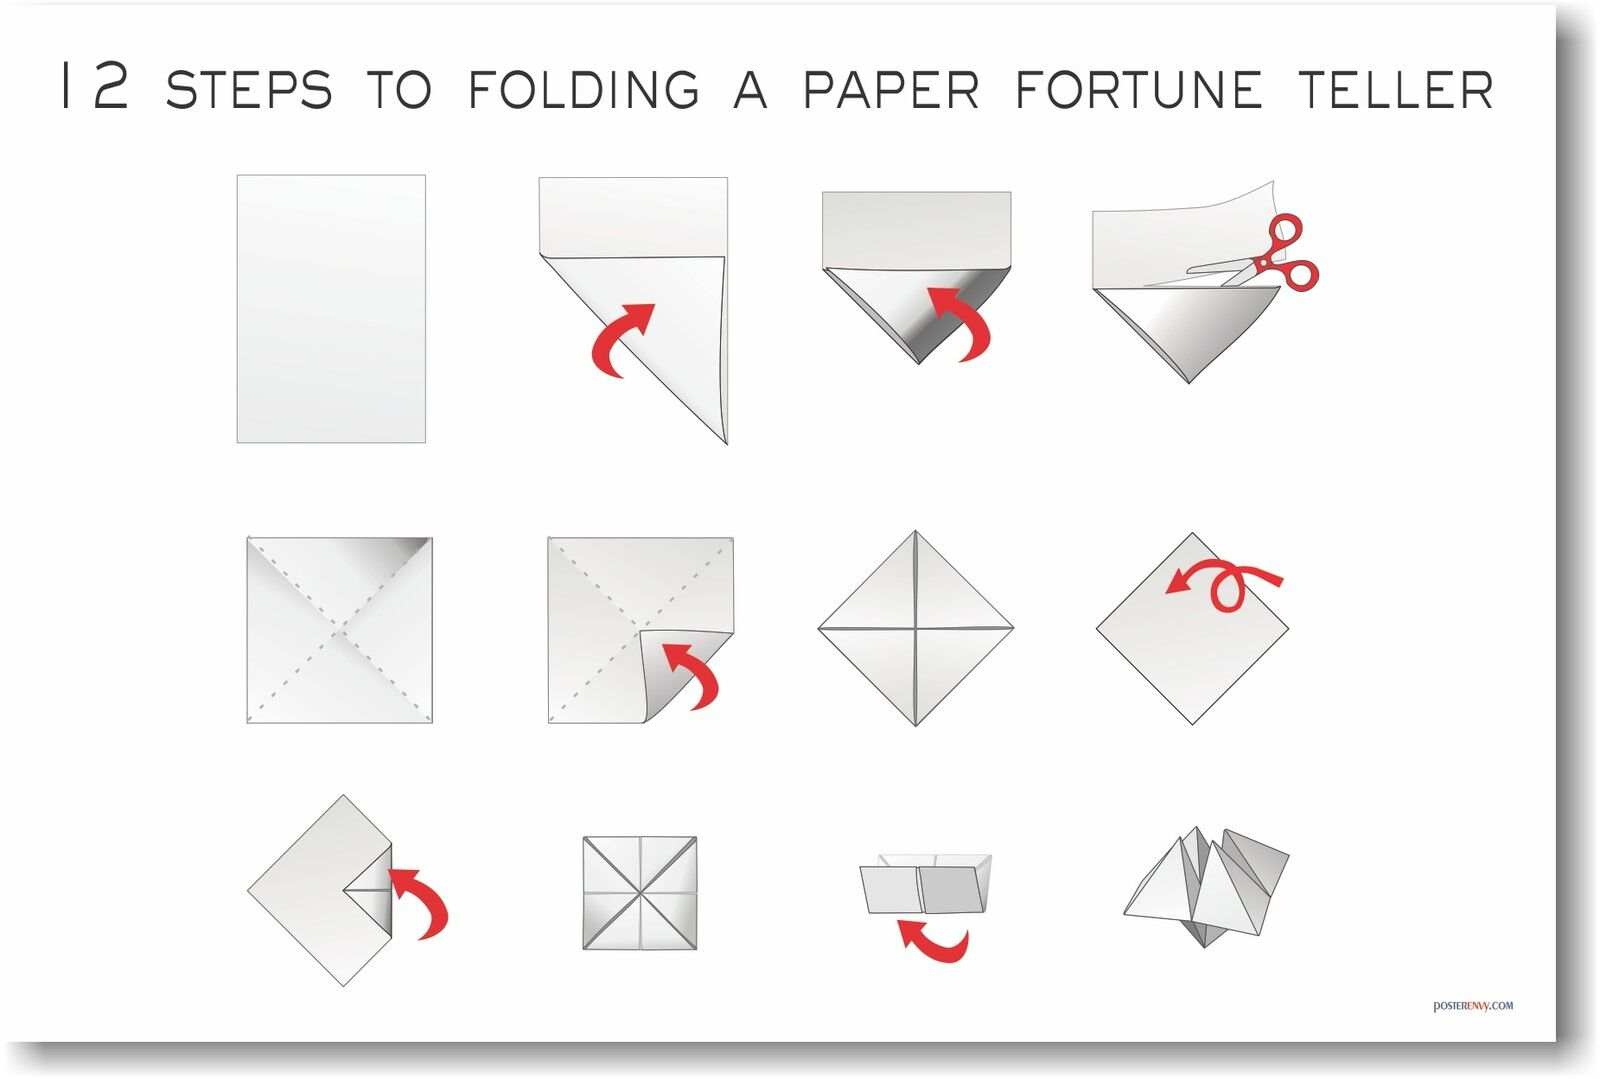 12 Steps To Folding A Paper Fortune Teller